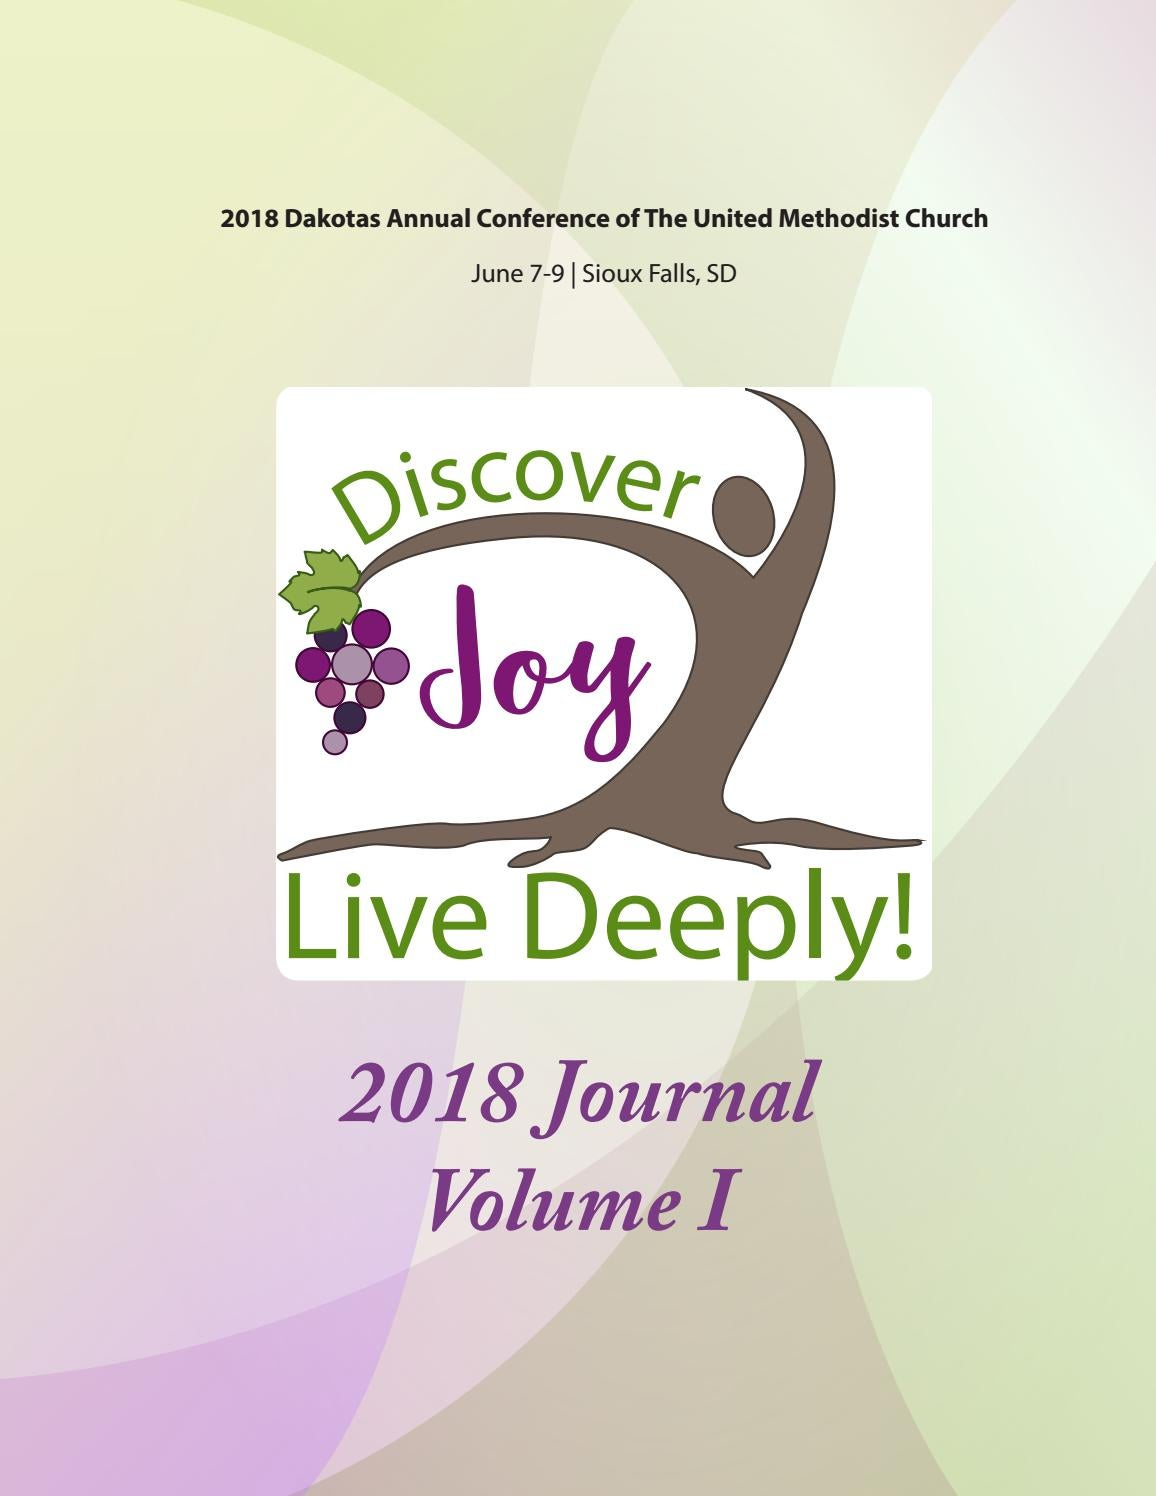 Ted Video 1602 How Childhood Trauma >> Volume I Journal 2018 By Dakotas Conference Umc Issuu